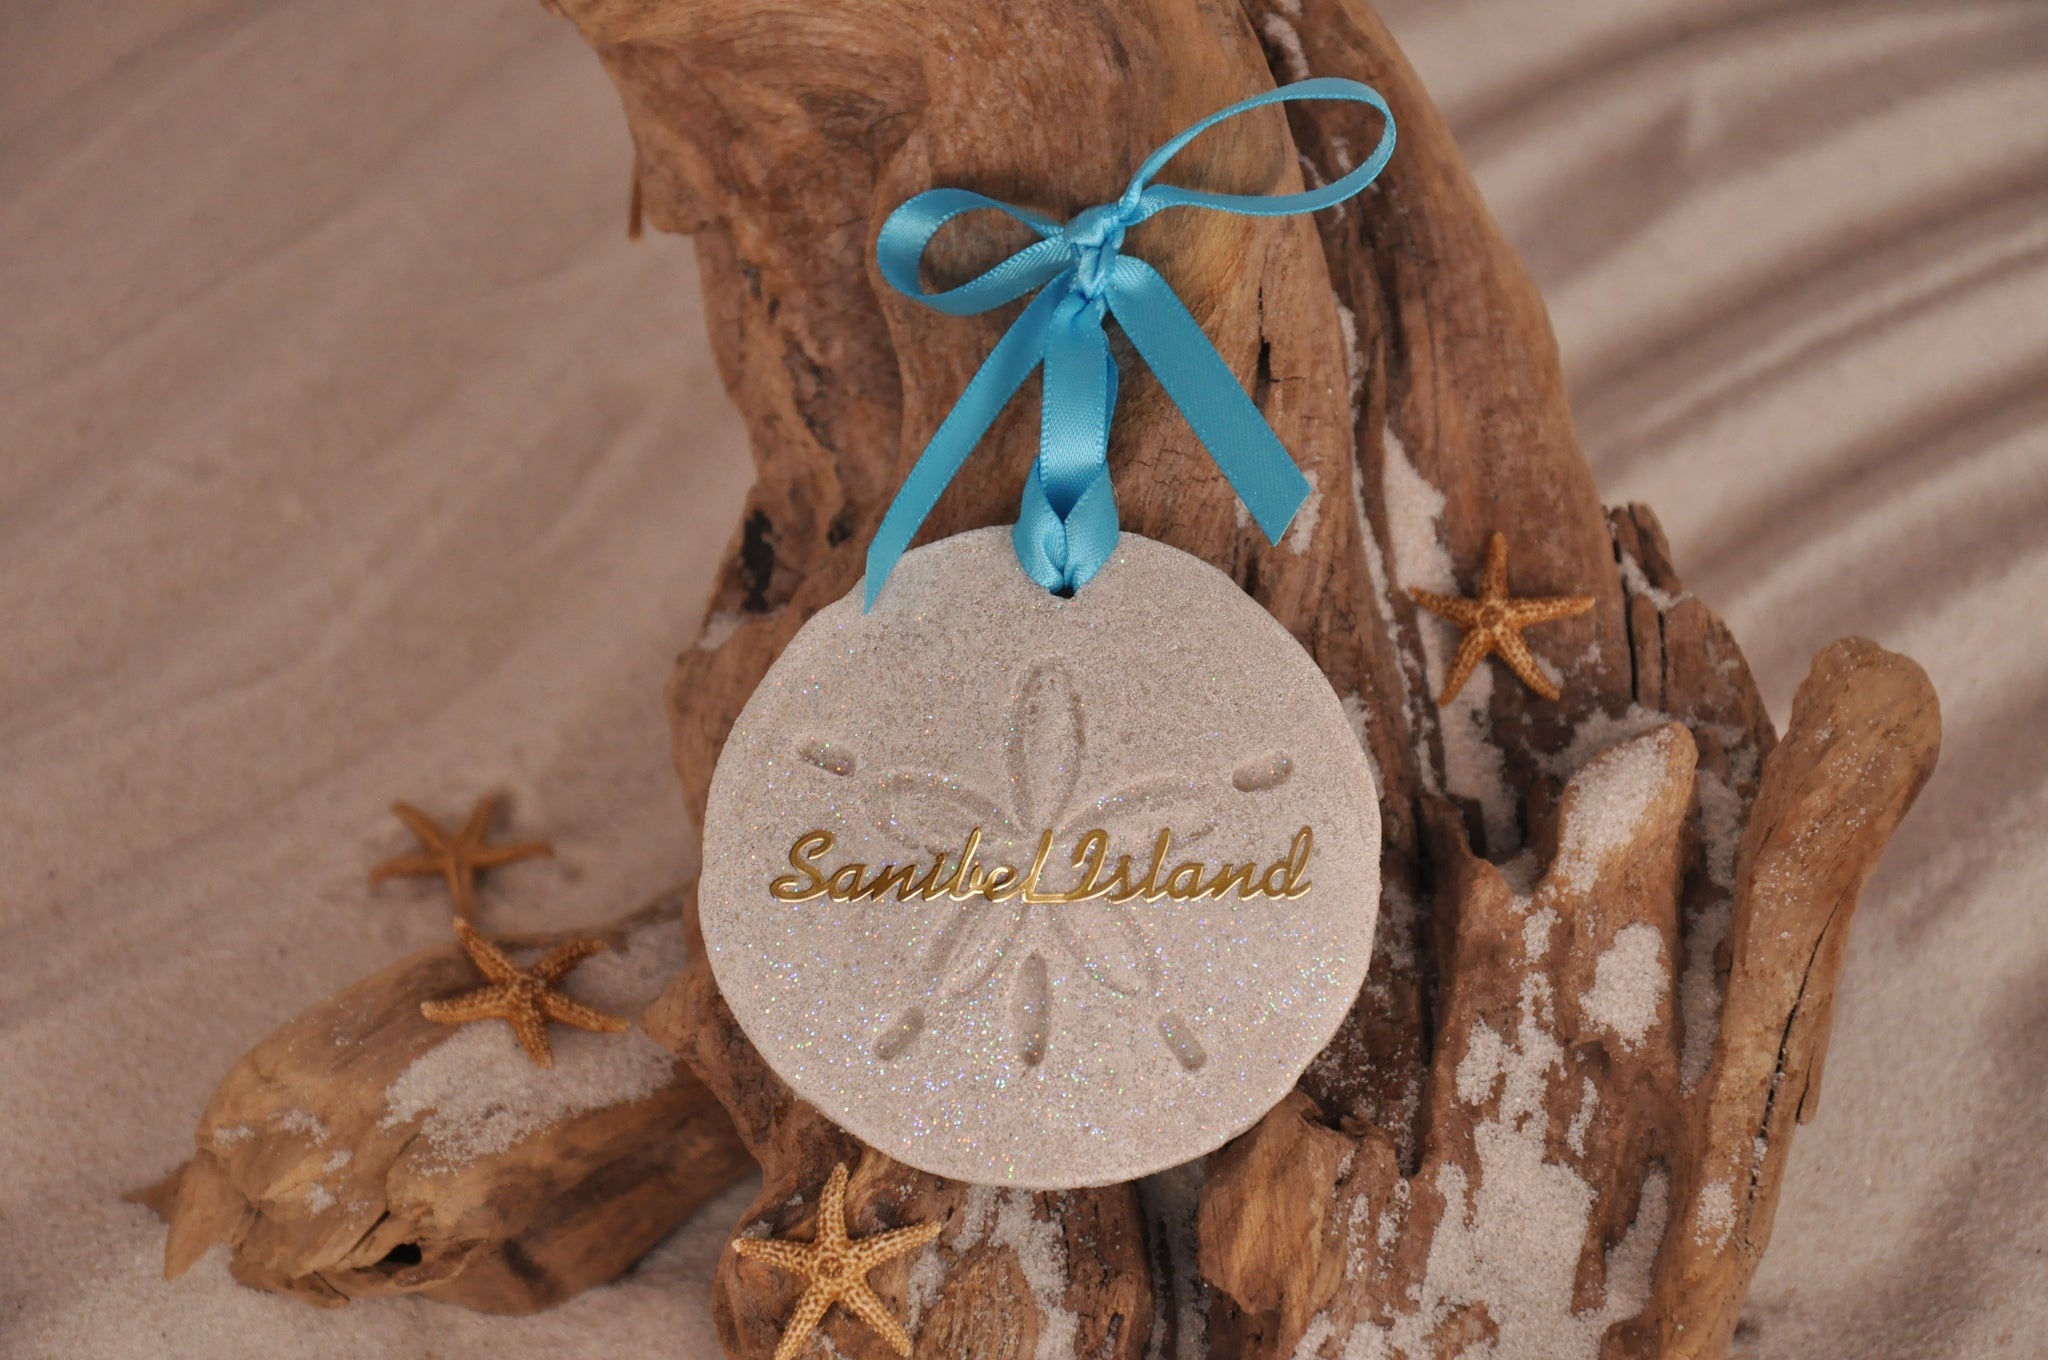 SAND ORNAMENT, CHRISTMAS TREE ORNAMENT, TROPICAL CHRISTMAS DECORATIONS, COASTAL ORNAMENT, SAND ORNAMENT, TROPICAL ORNAMENT, ARENOPHILE, CHRISTMAS ORNAMENT, SAND DOLLAR, SANIBEL, DESTINATION